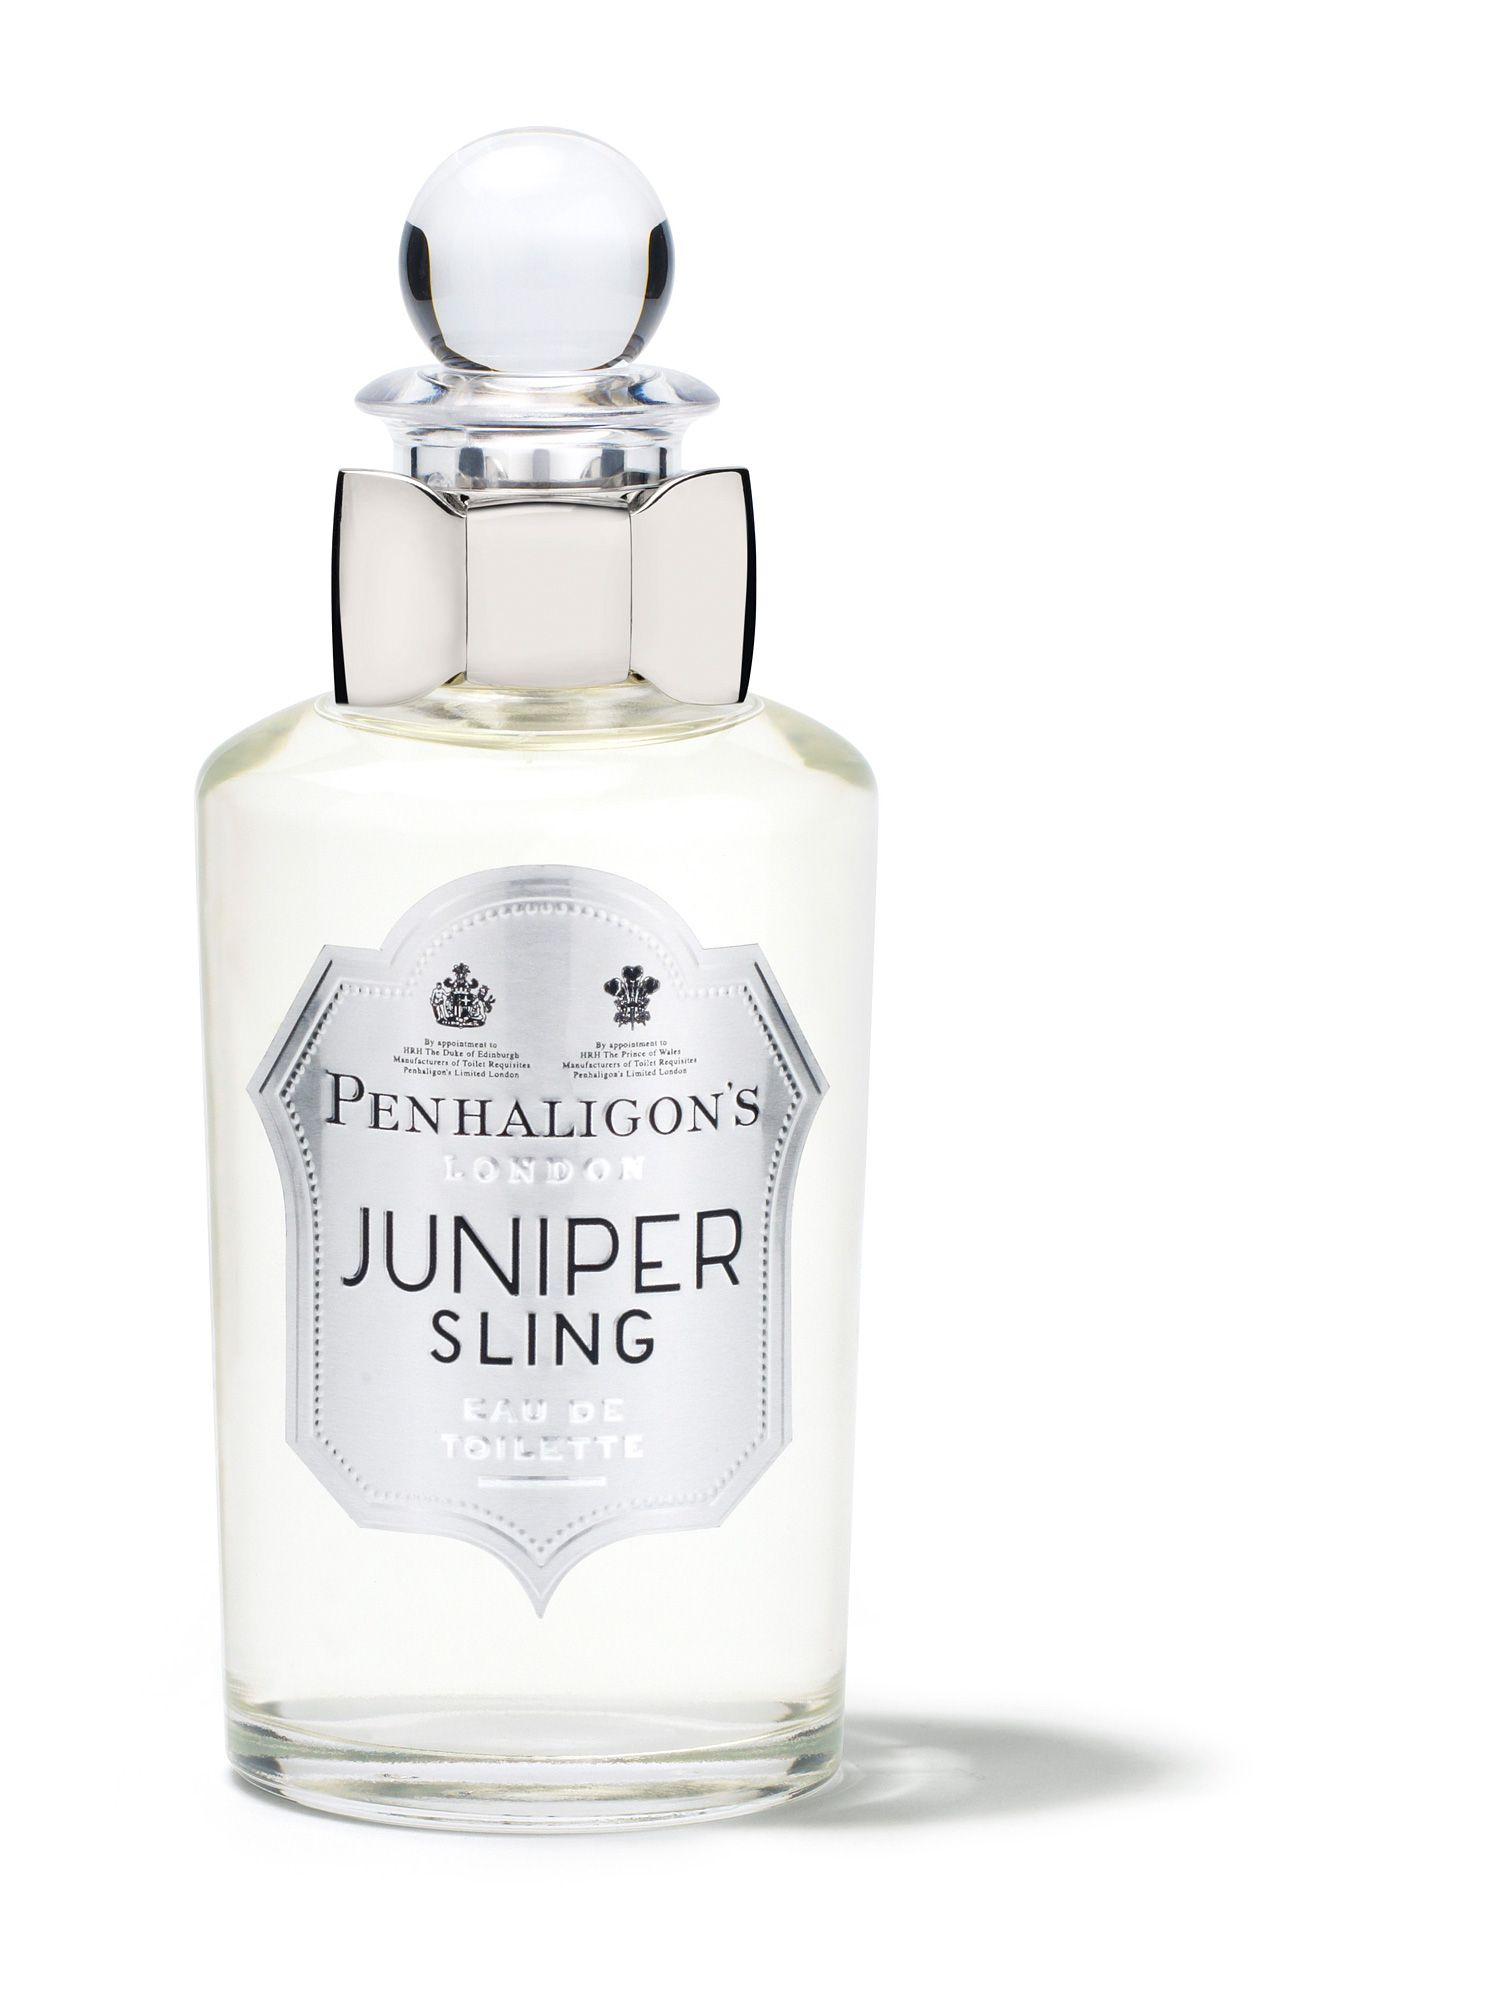 Juniper Sling Eau de Toilette 100ml